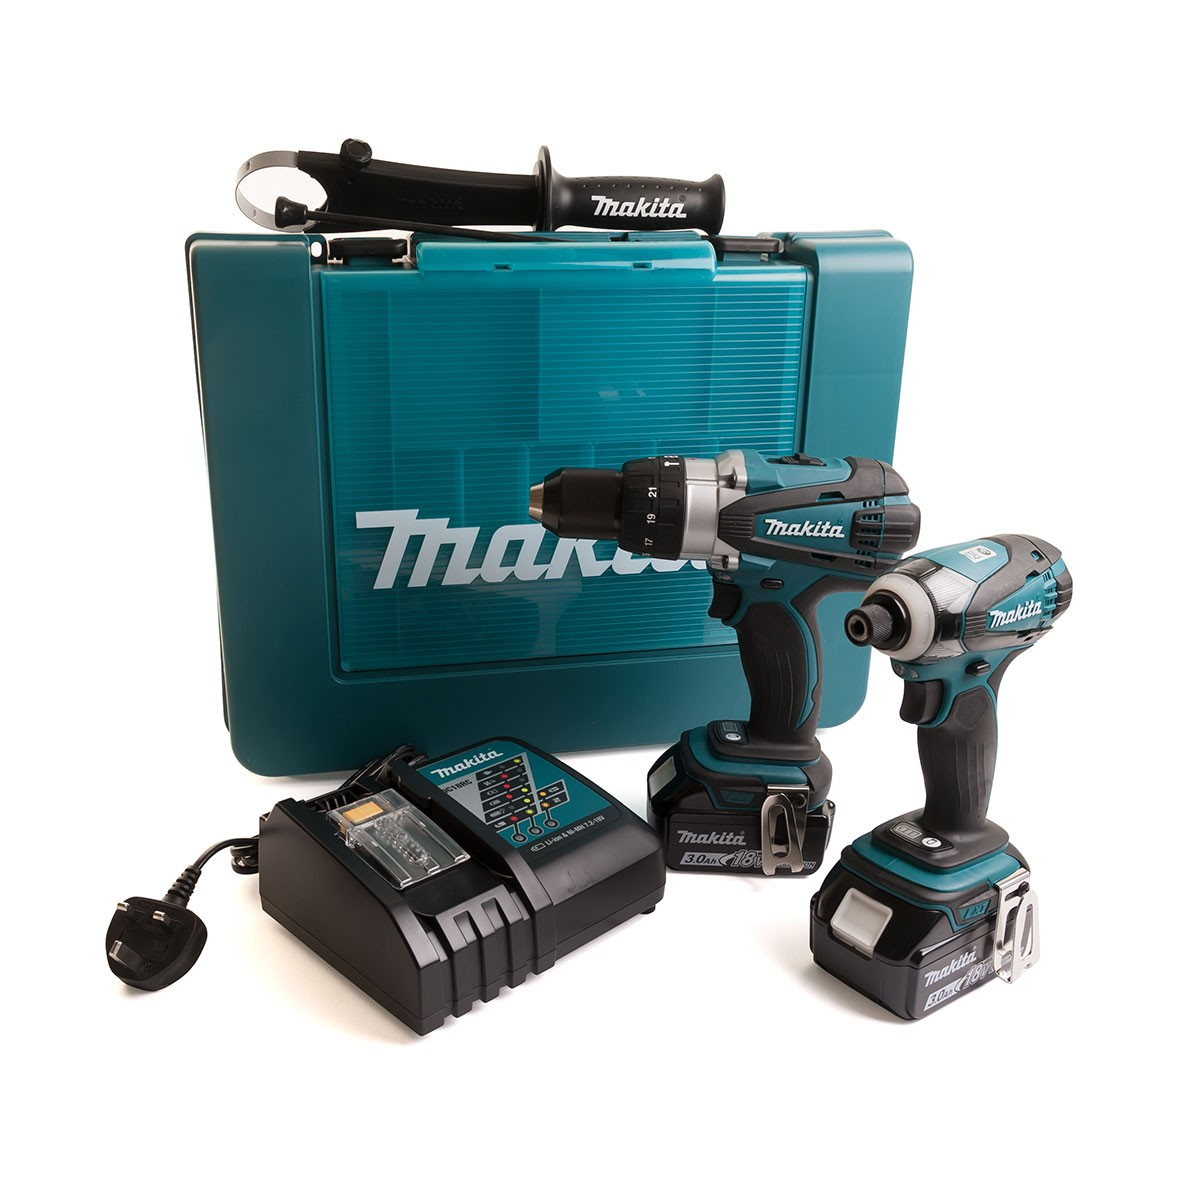 Makita DLX2005 18v Impact Driver/Combi Drill Kit inc 2x 3Ah Batts